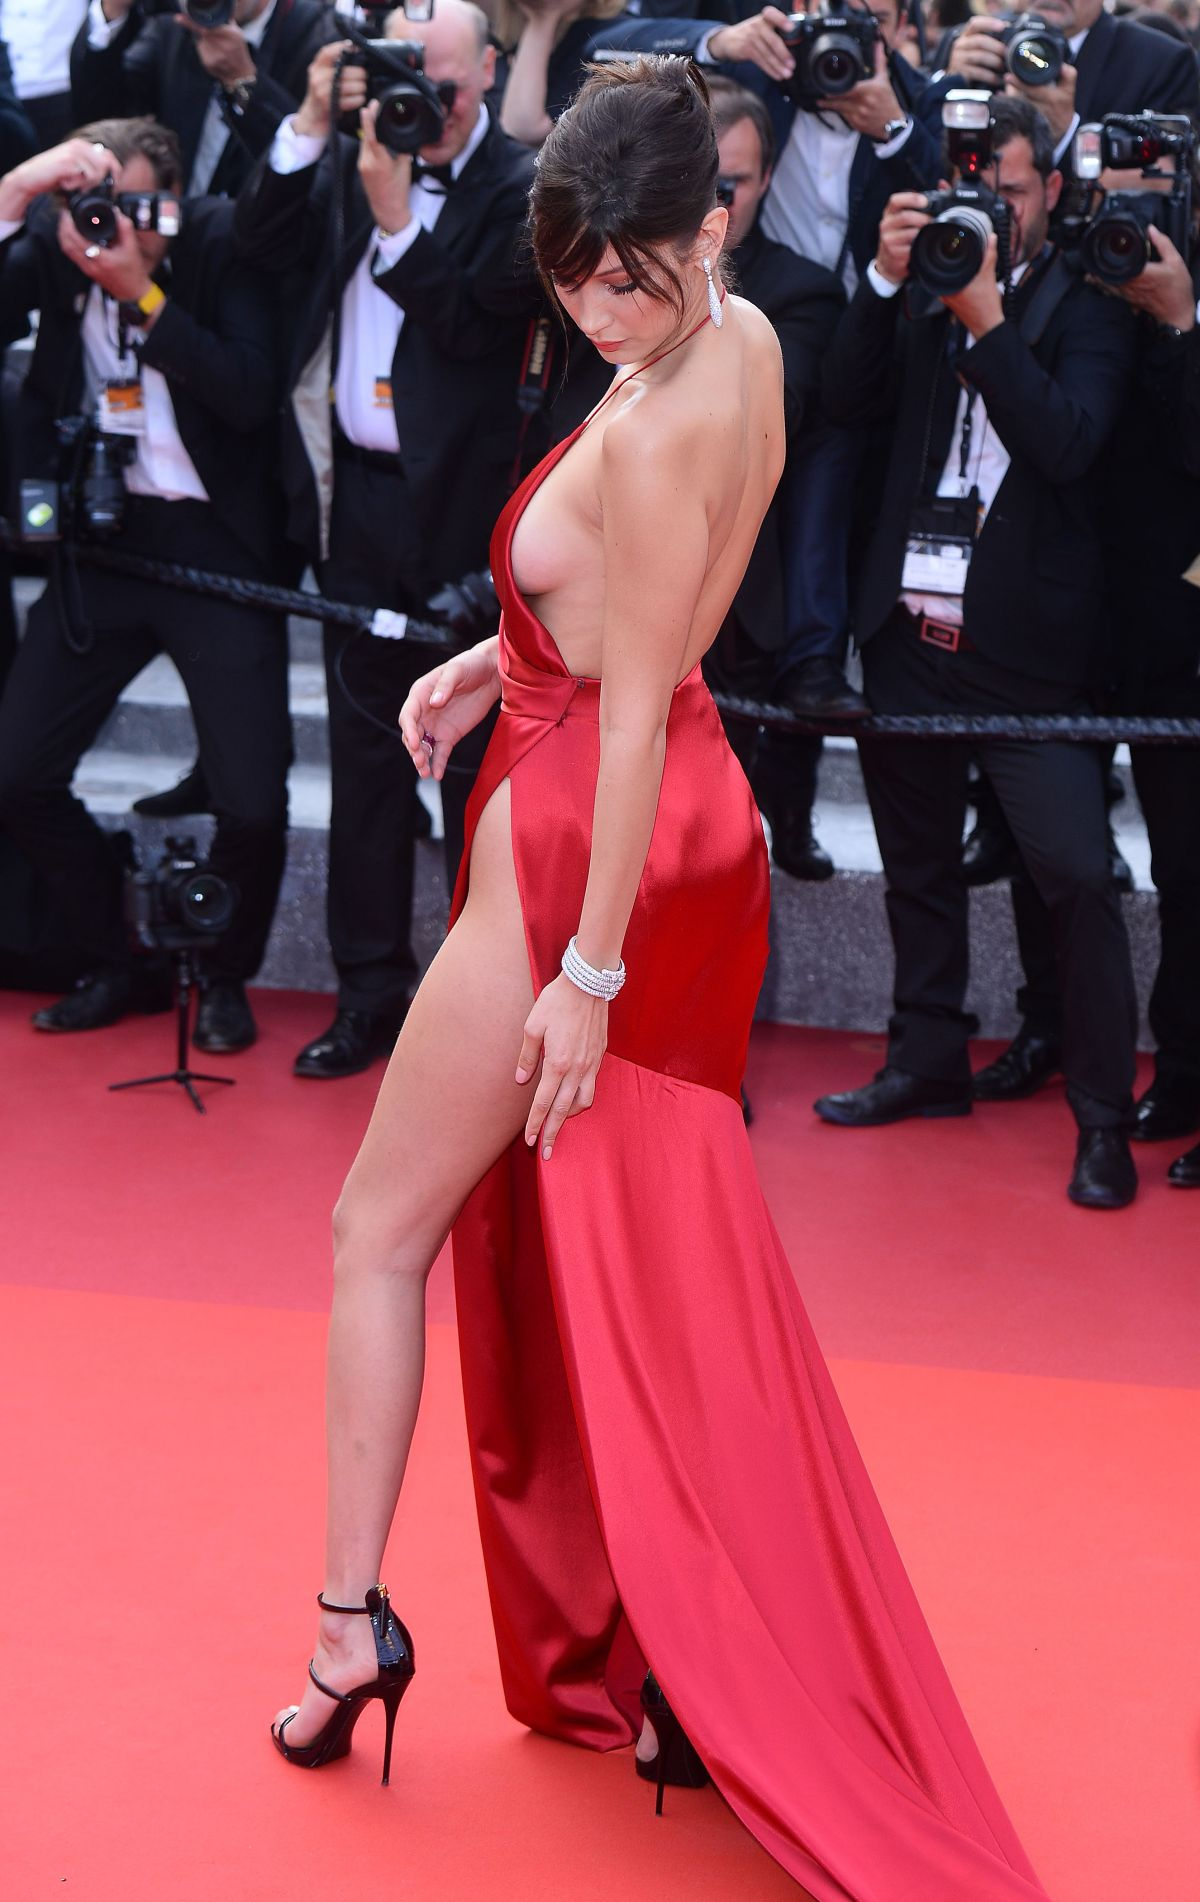 http-forum.ns4w.org-showthread.php-570203-bella-hadid-the-unknown-girl-premiere-at-69th-annual-cannes-film-festival-05-18-16-adds-s-08ce82a2f025b7305318944fd6bd9518_31